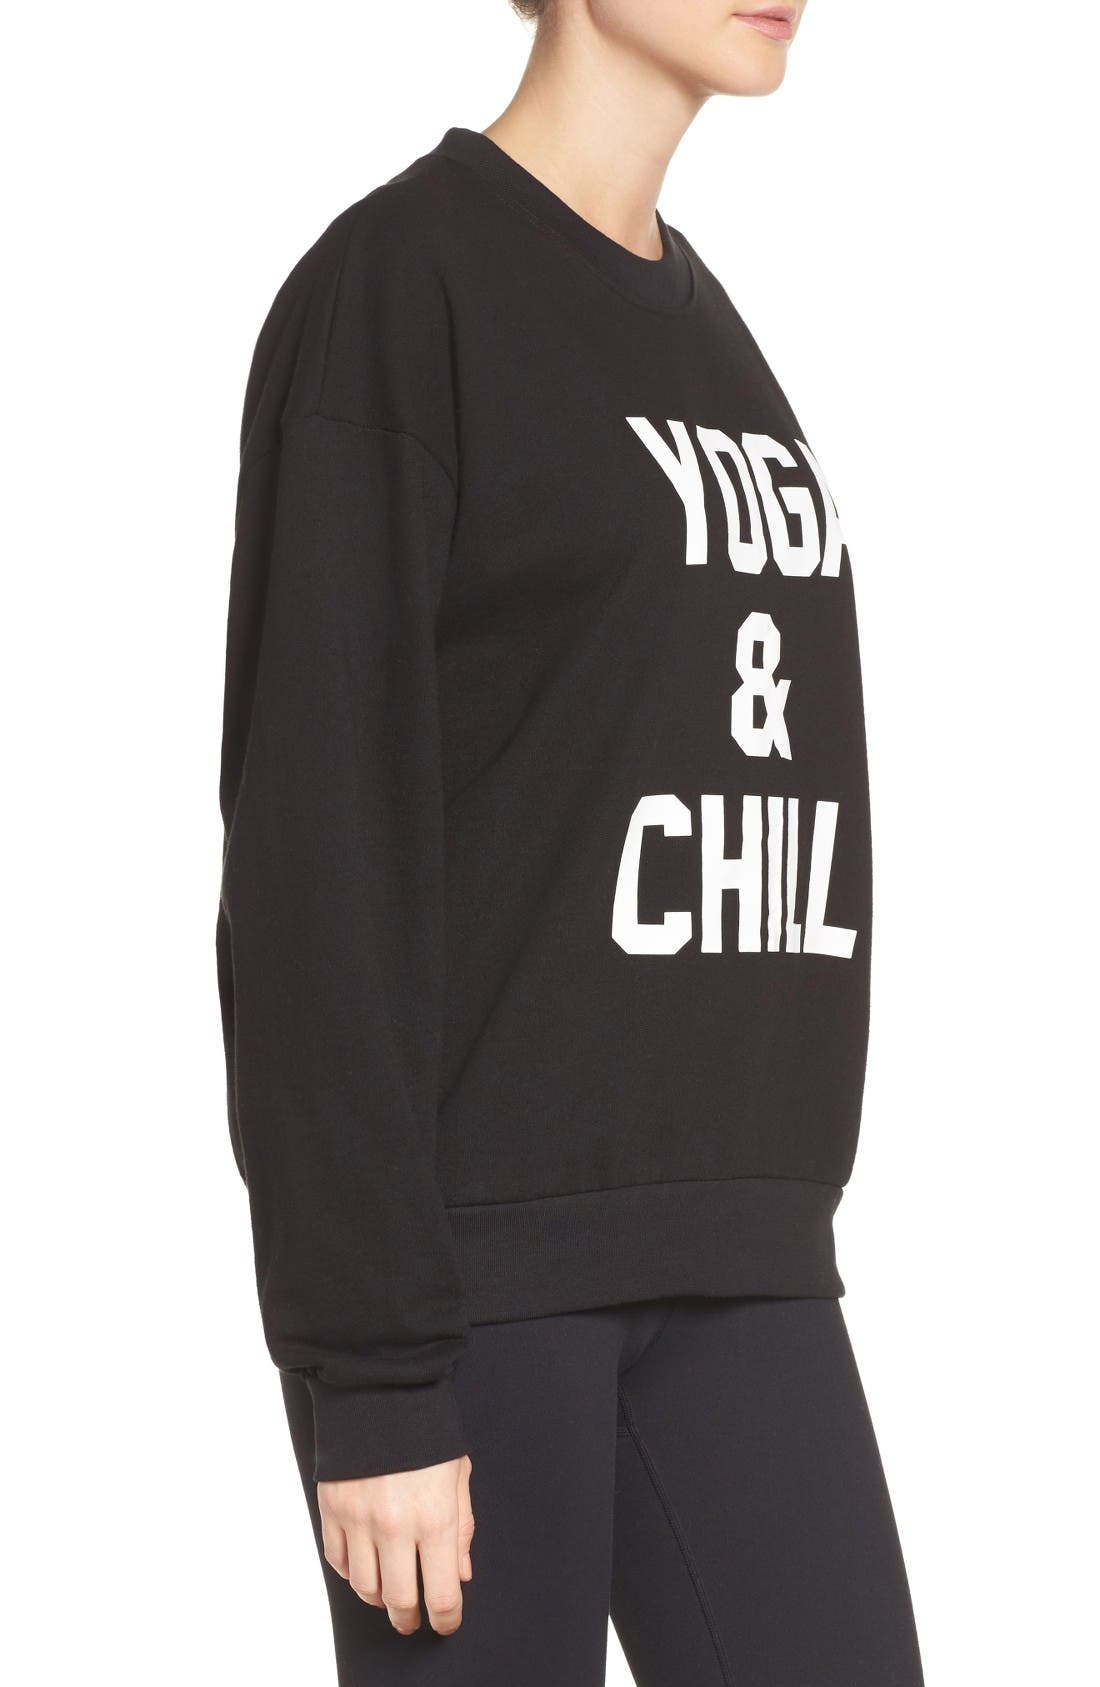 Yoga & Chill Sweatshirt,                             Alternate thumbnail 3, color,                             Black